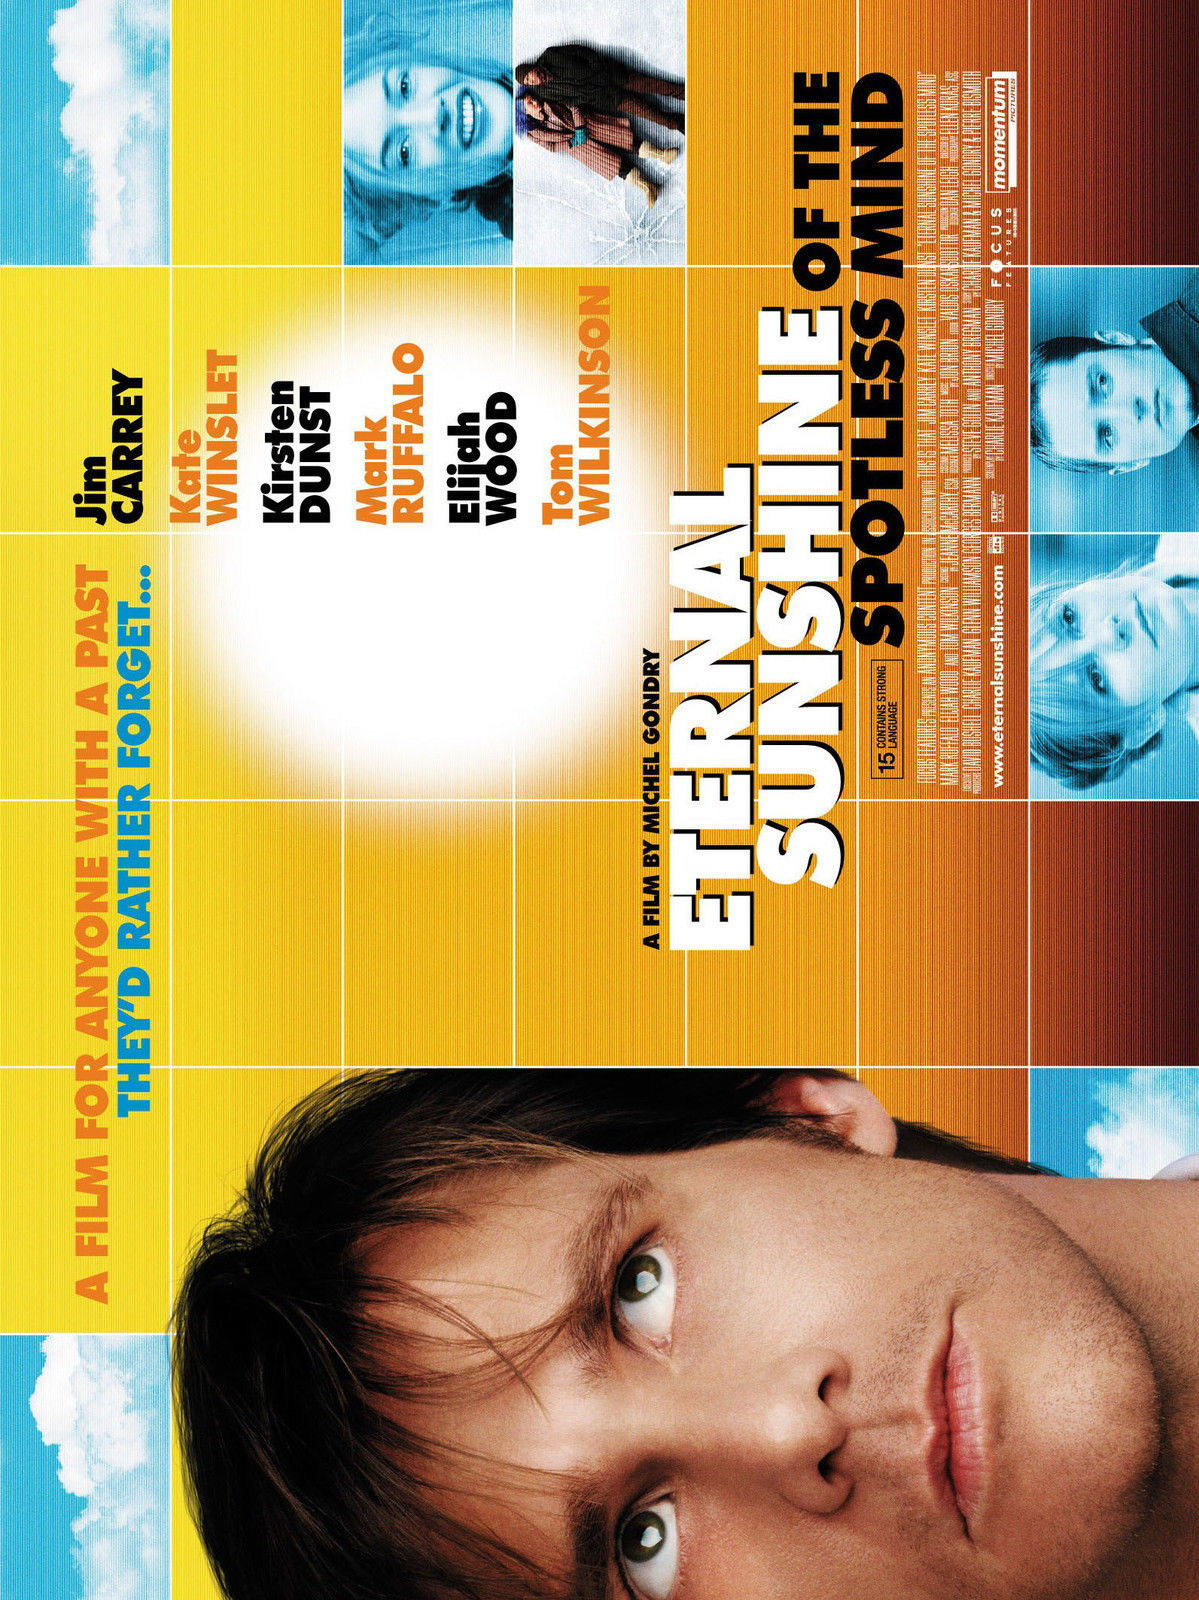 74190-ETERNAL-SUNSHINE-OF-THE-SPOTLESS-MIND-Jim-Carrey-Wall-Print-Poster-Affiche